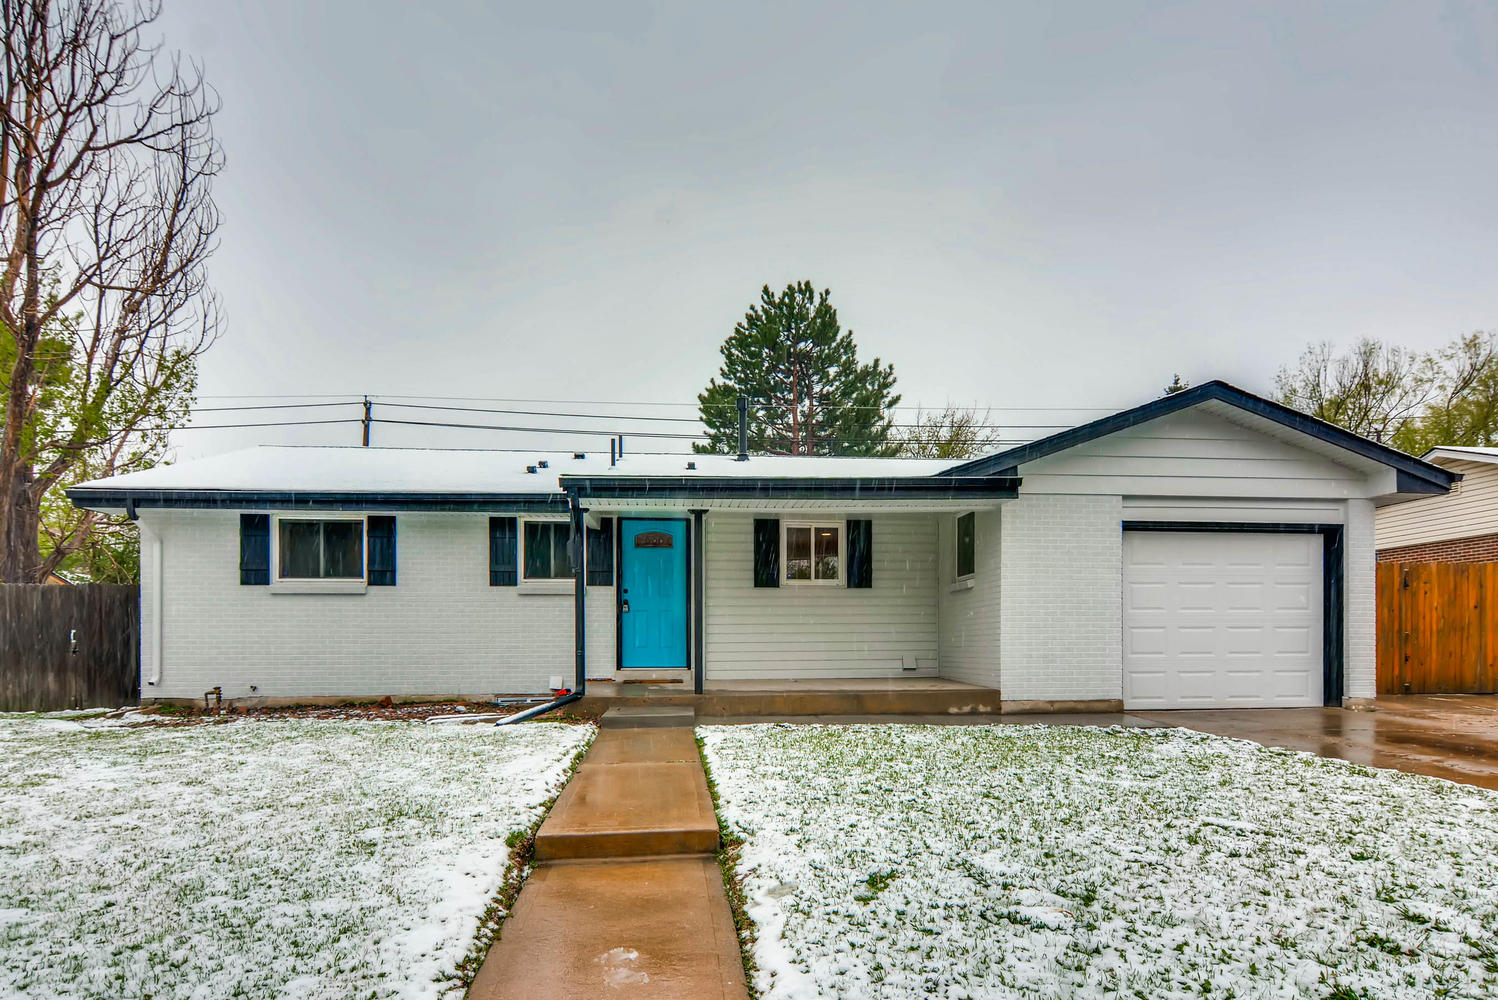 Charming, completely updated ranch home in sought-after Allendale. Buyers will fall in love w/ open floor plan and spacious kitchen. Don't miss! Sure to go fast.